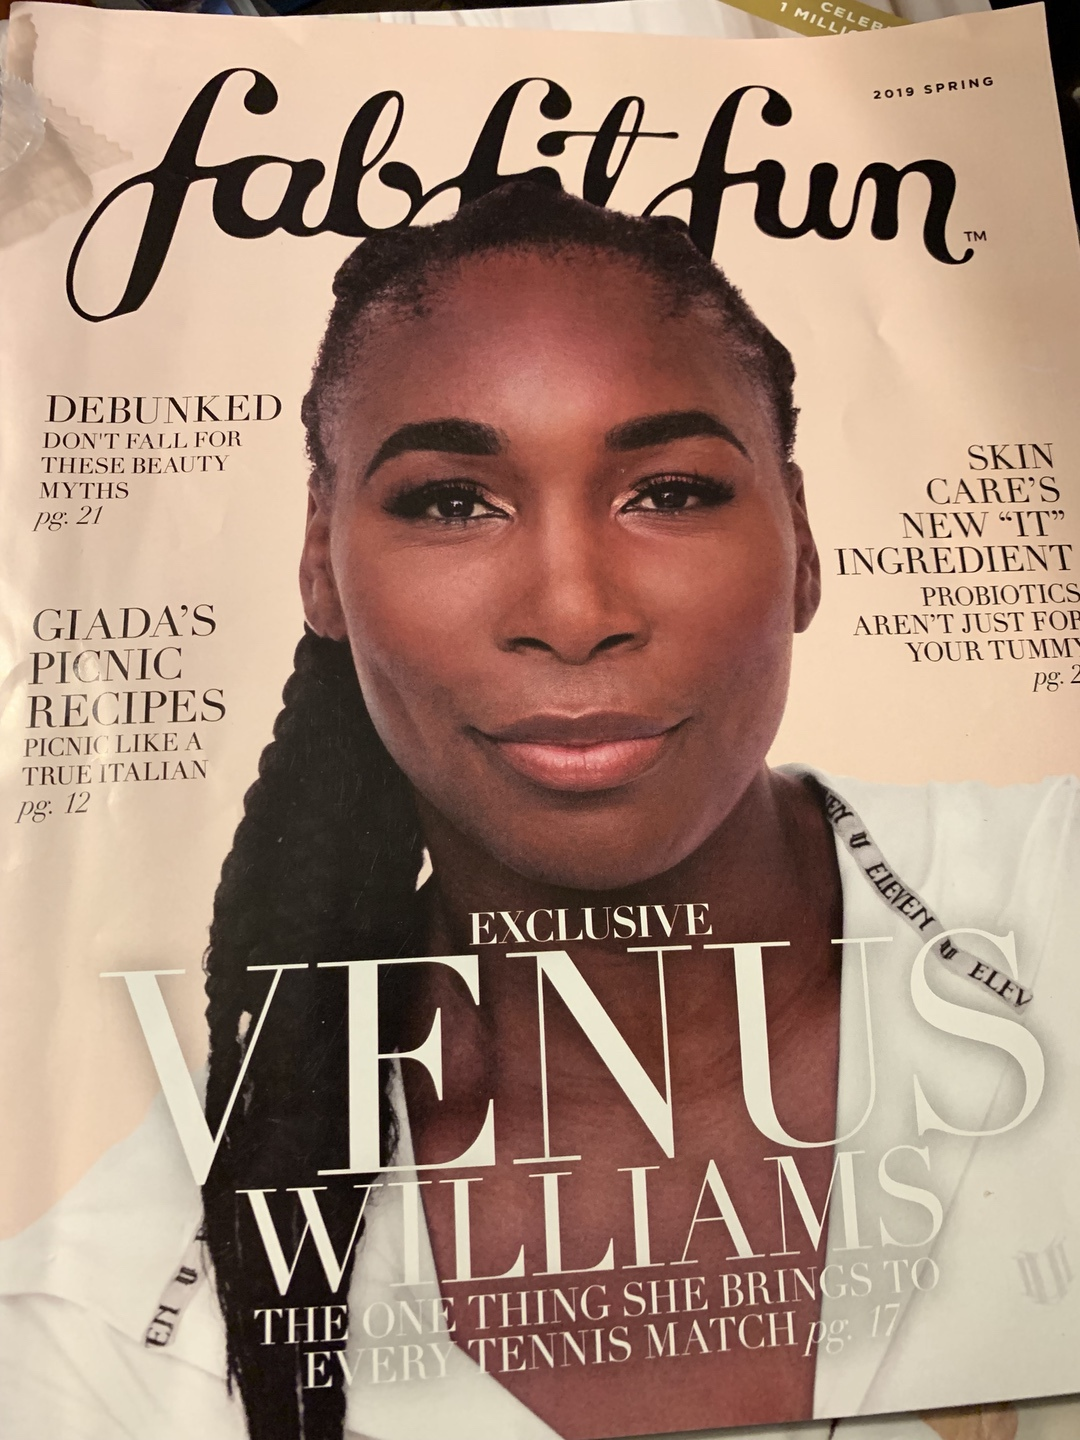 A close up of a magazine from FabFitFun